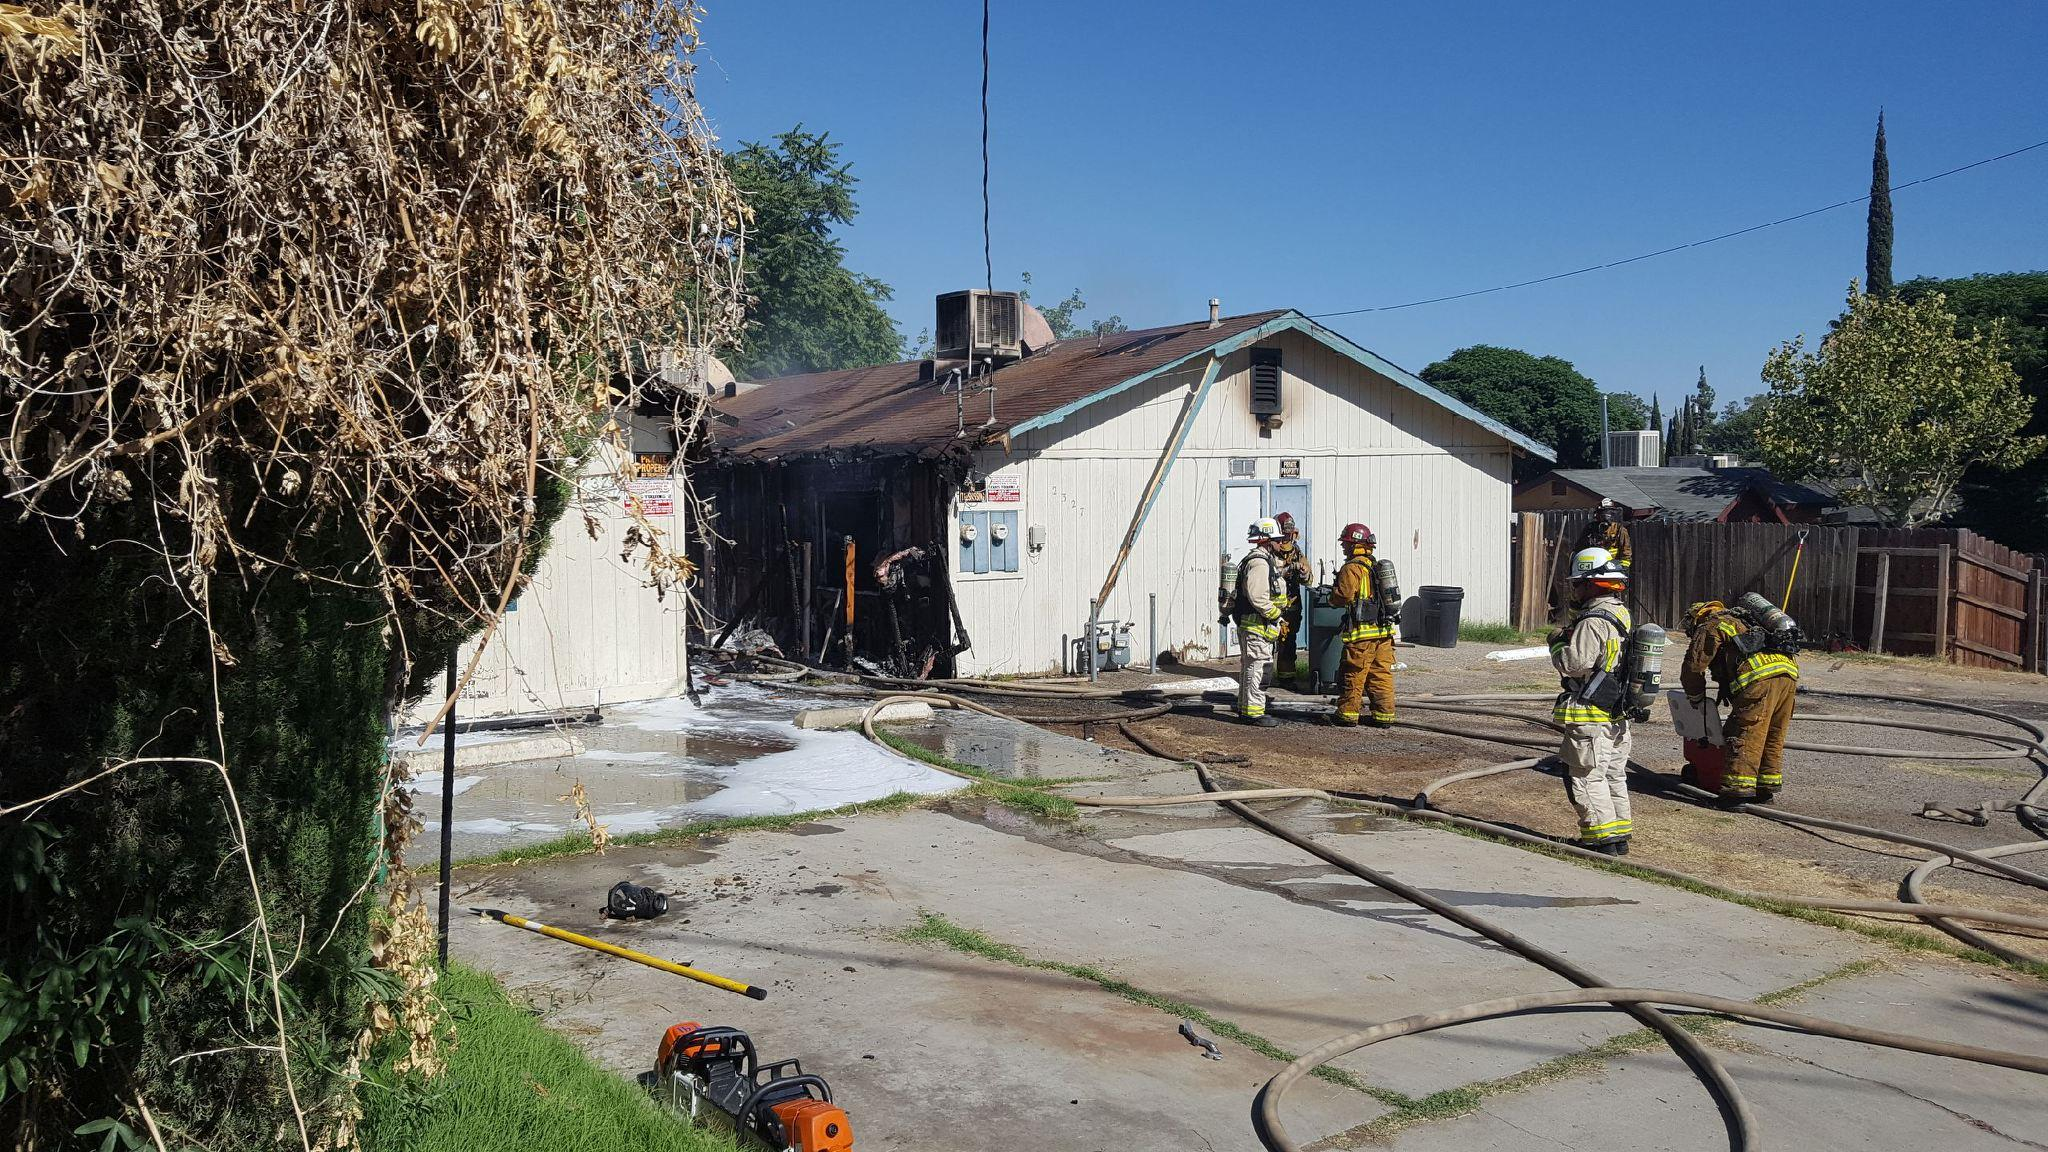 Firefighters are on scene of a residential fire off Wilshire Alley in Bakersfield, Calif., Thursday, June 29, 2017. Fire officials say one person died in the fire. (KBAK/KBFX photo/Octavio Flores)